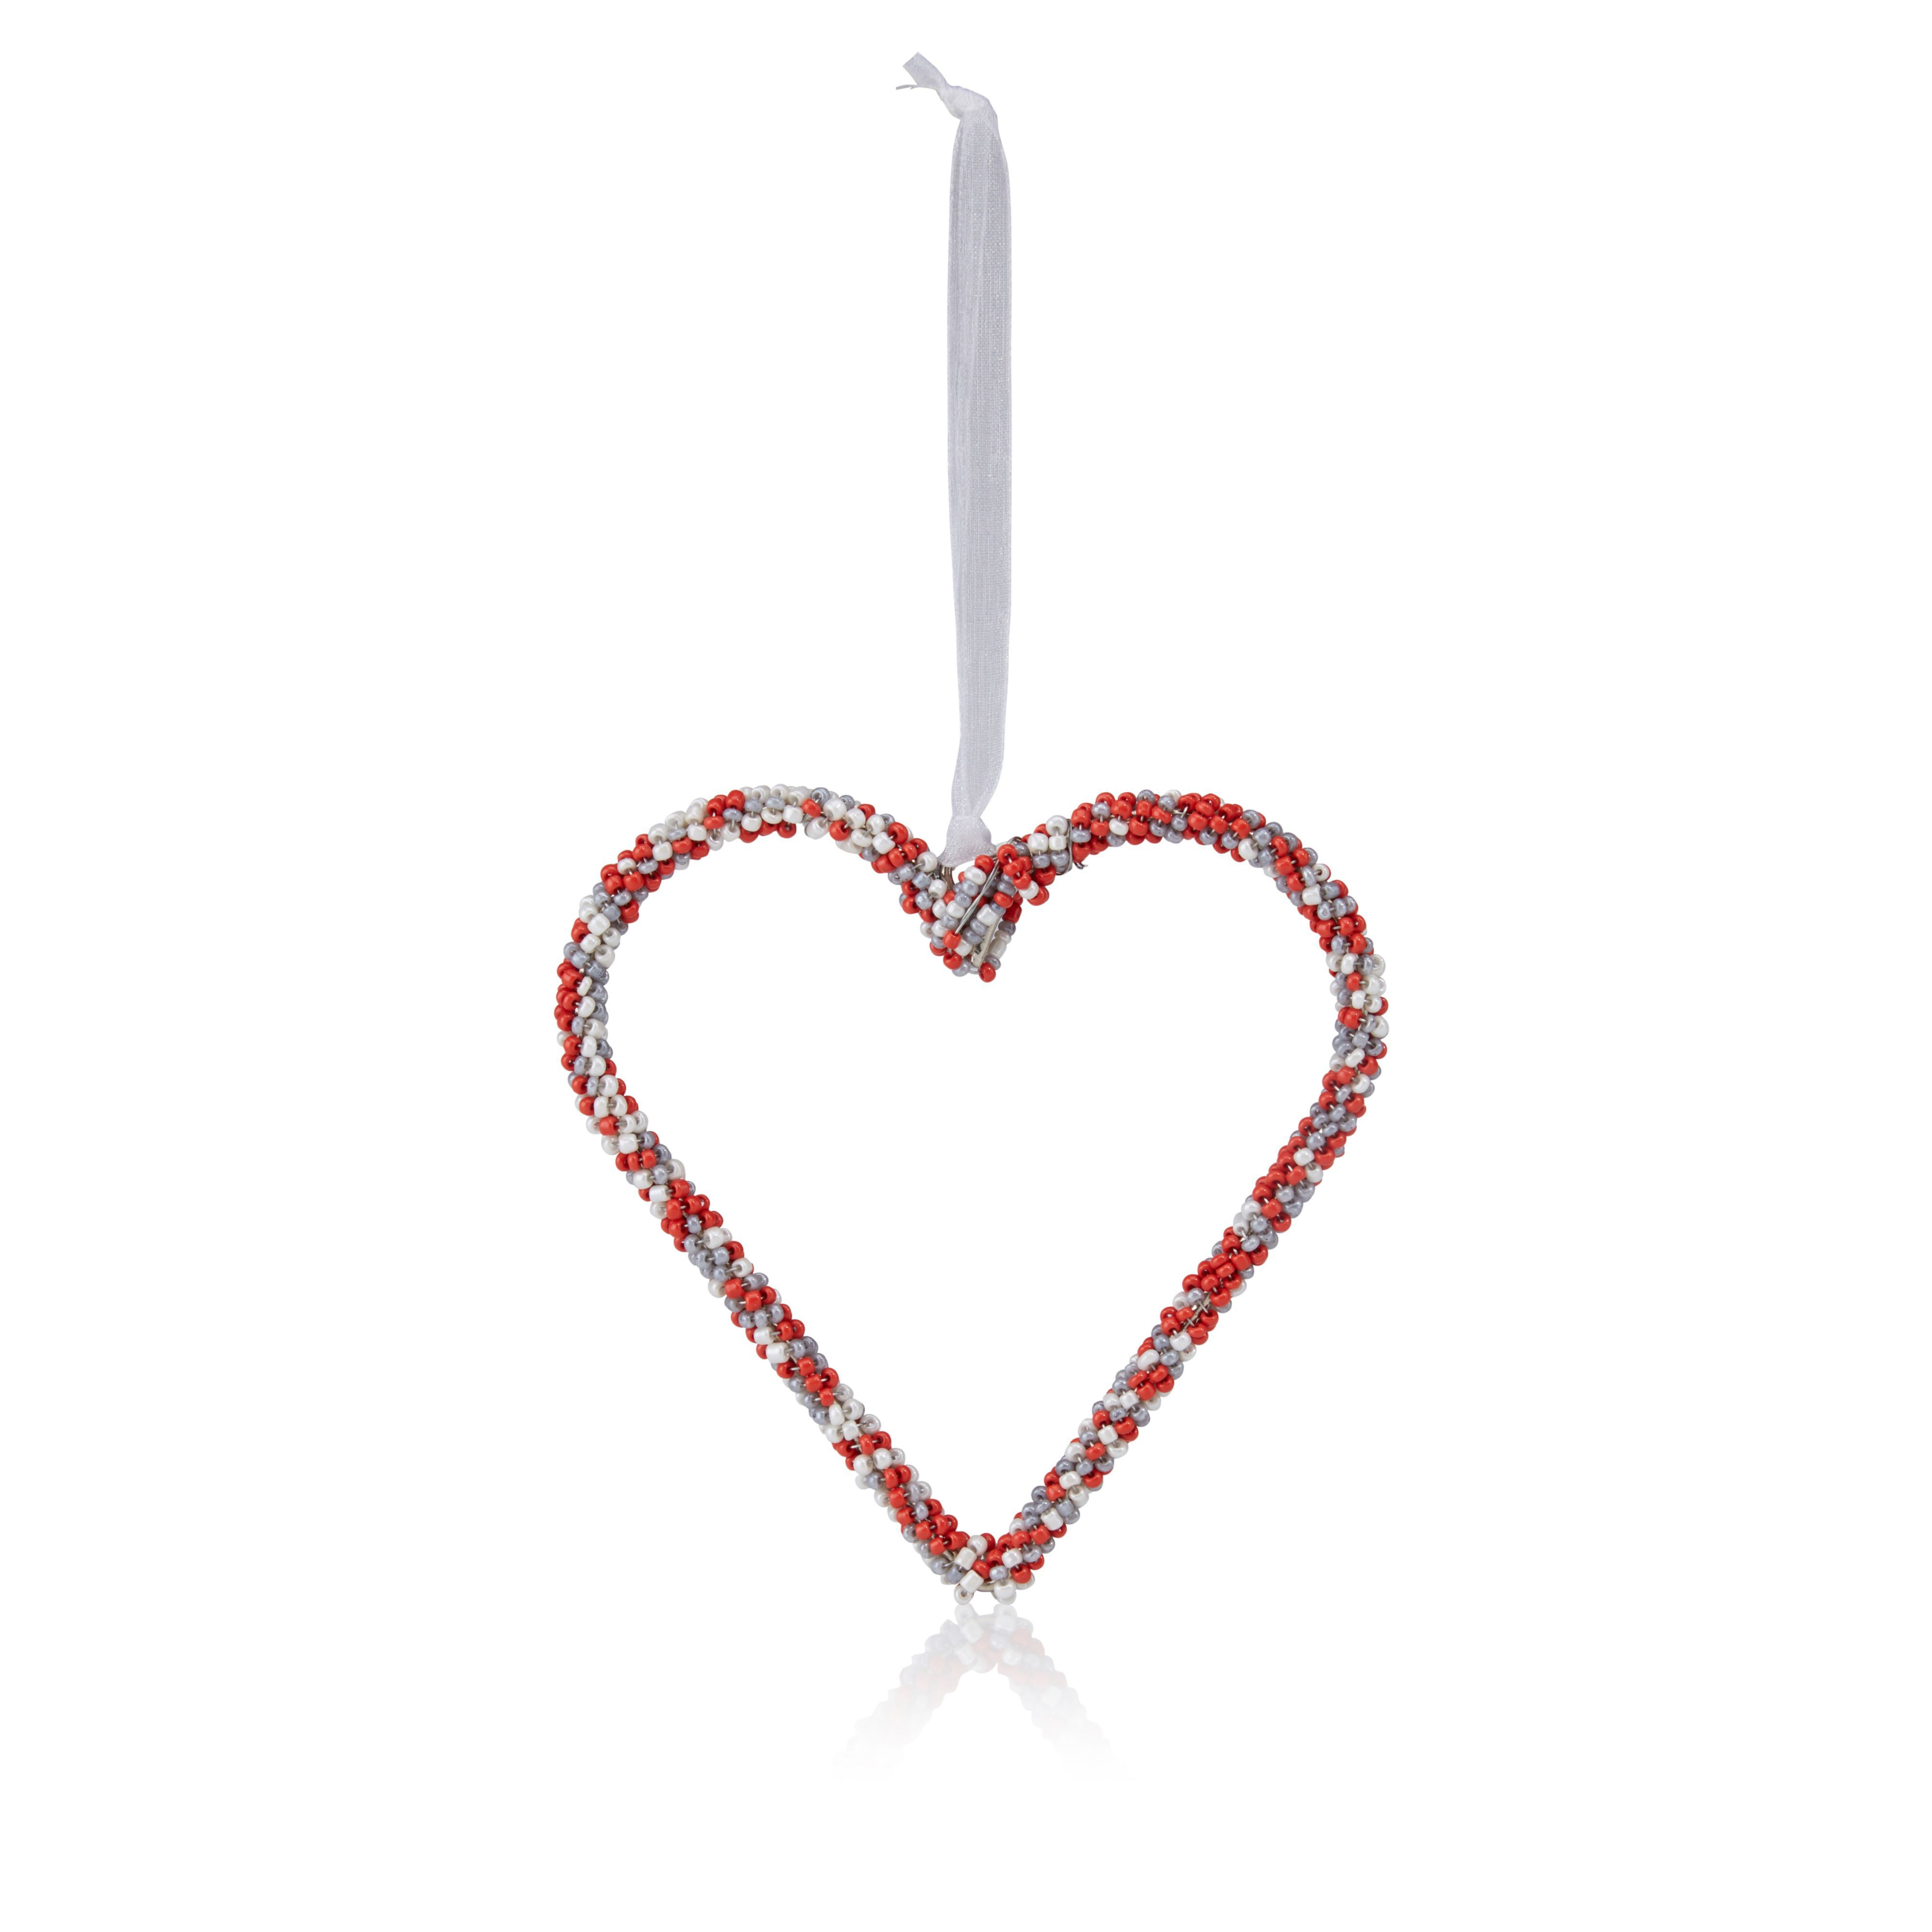 Red, White & Grey Beaded Heart Tree Decoration